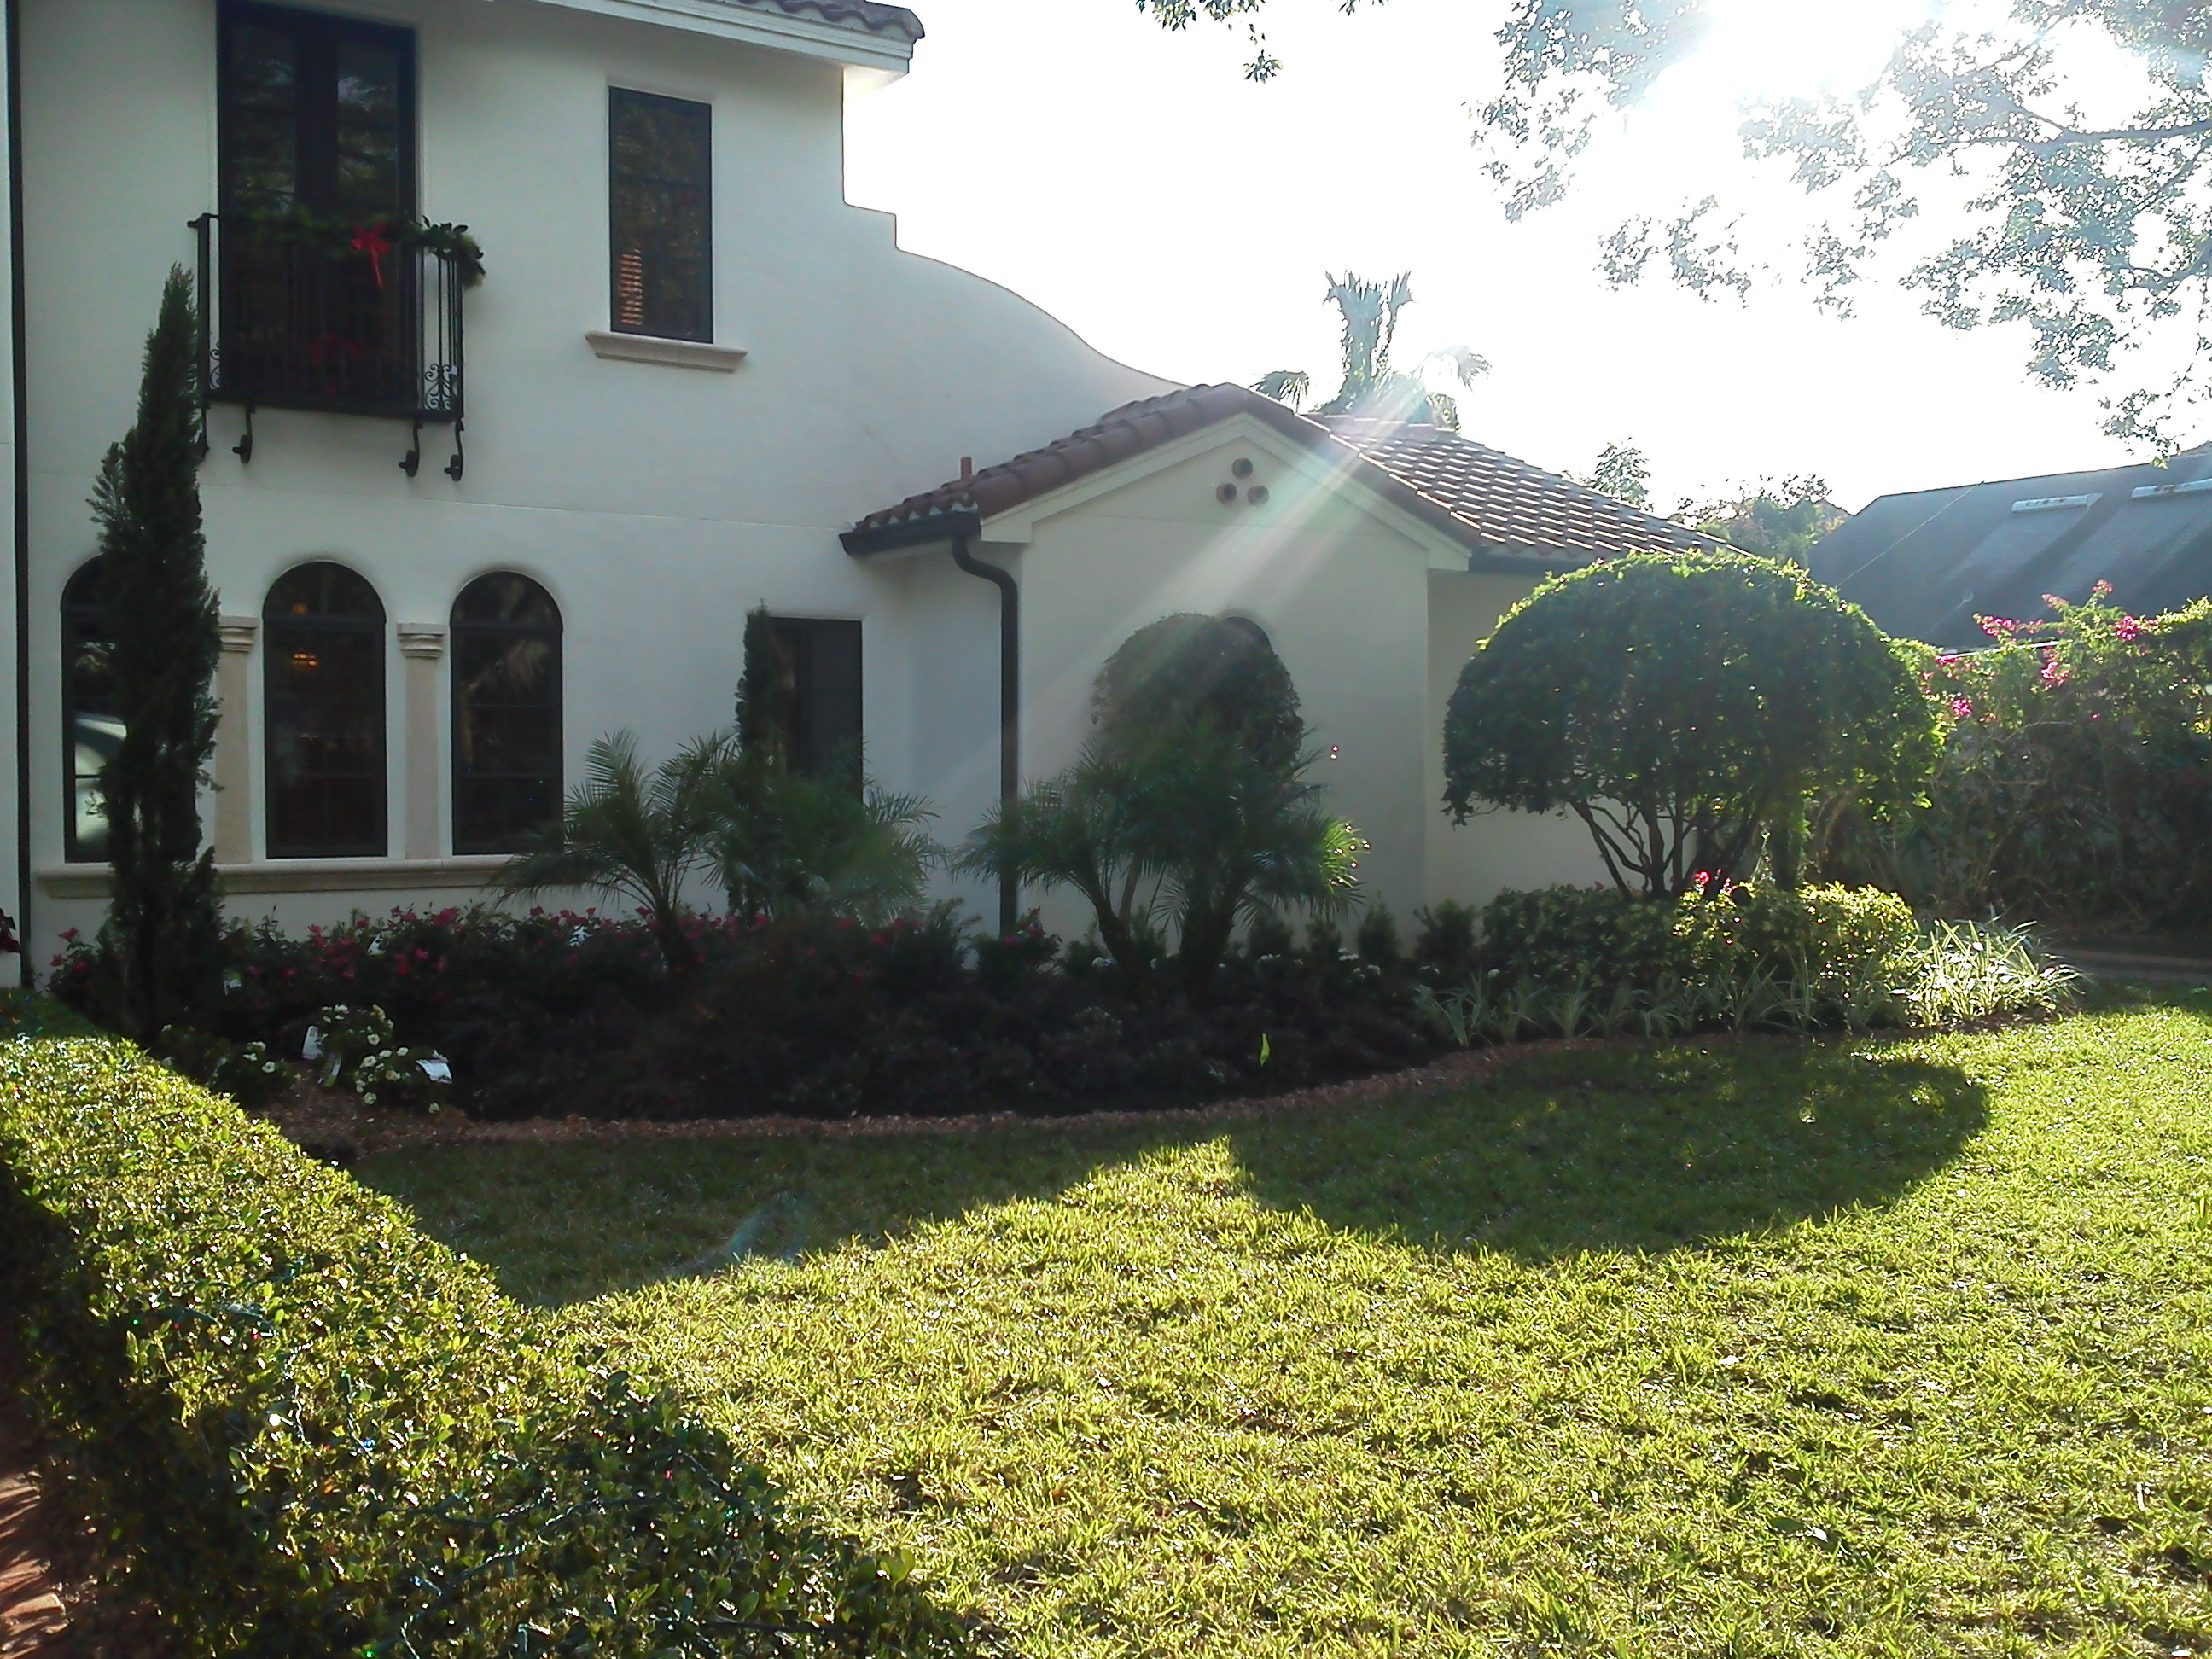 Winter park landscaping redesign jason yero group for Redesigning the front of your house